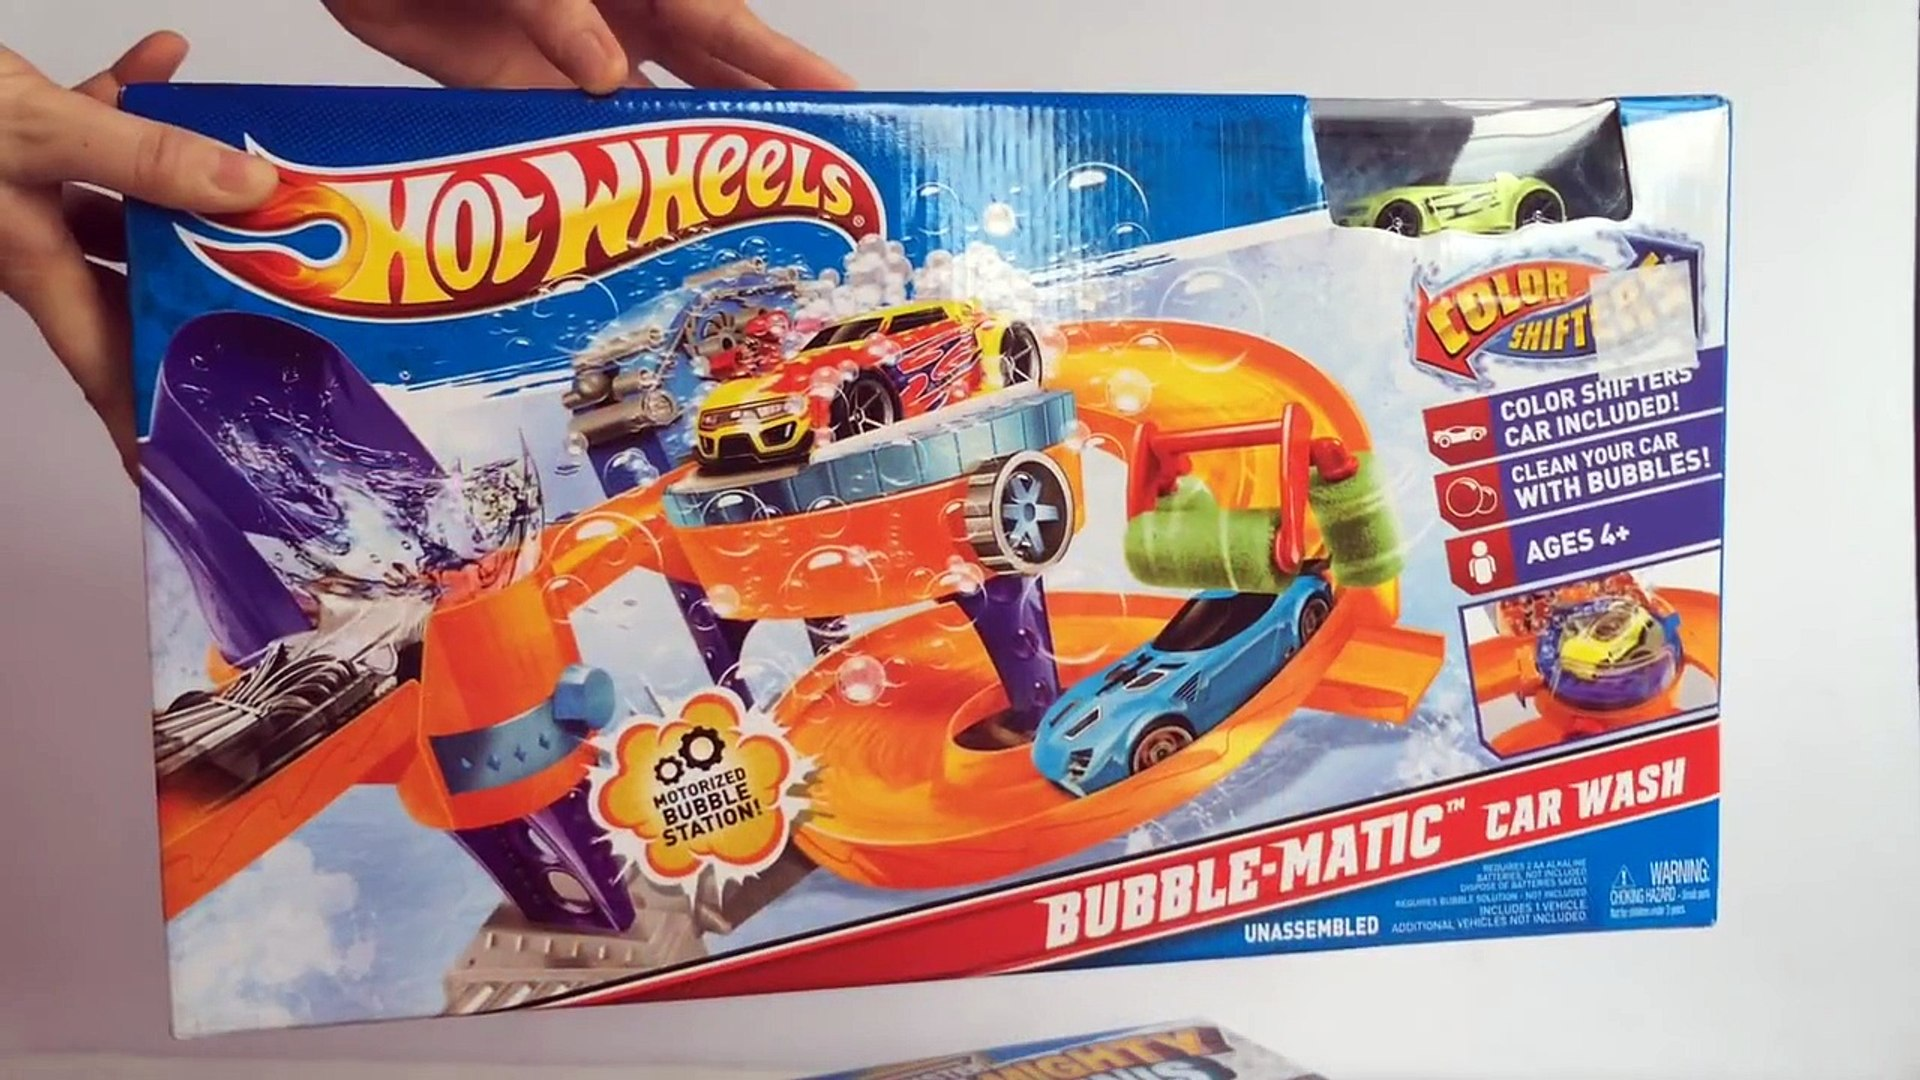 Hot Wheels Color Shifters Bubble Matic Car Wash Unboxing Demo Review Dailymotion Video